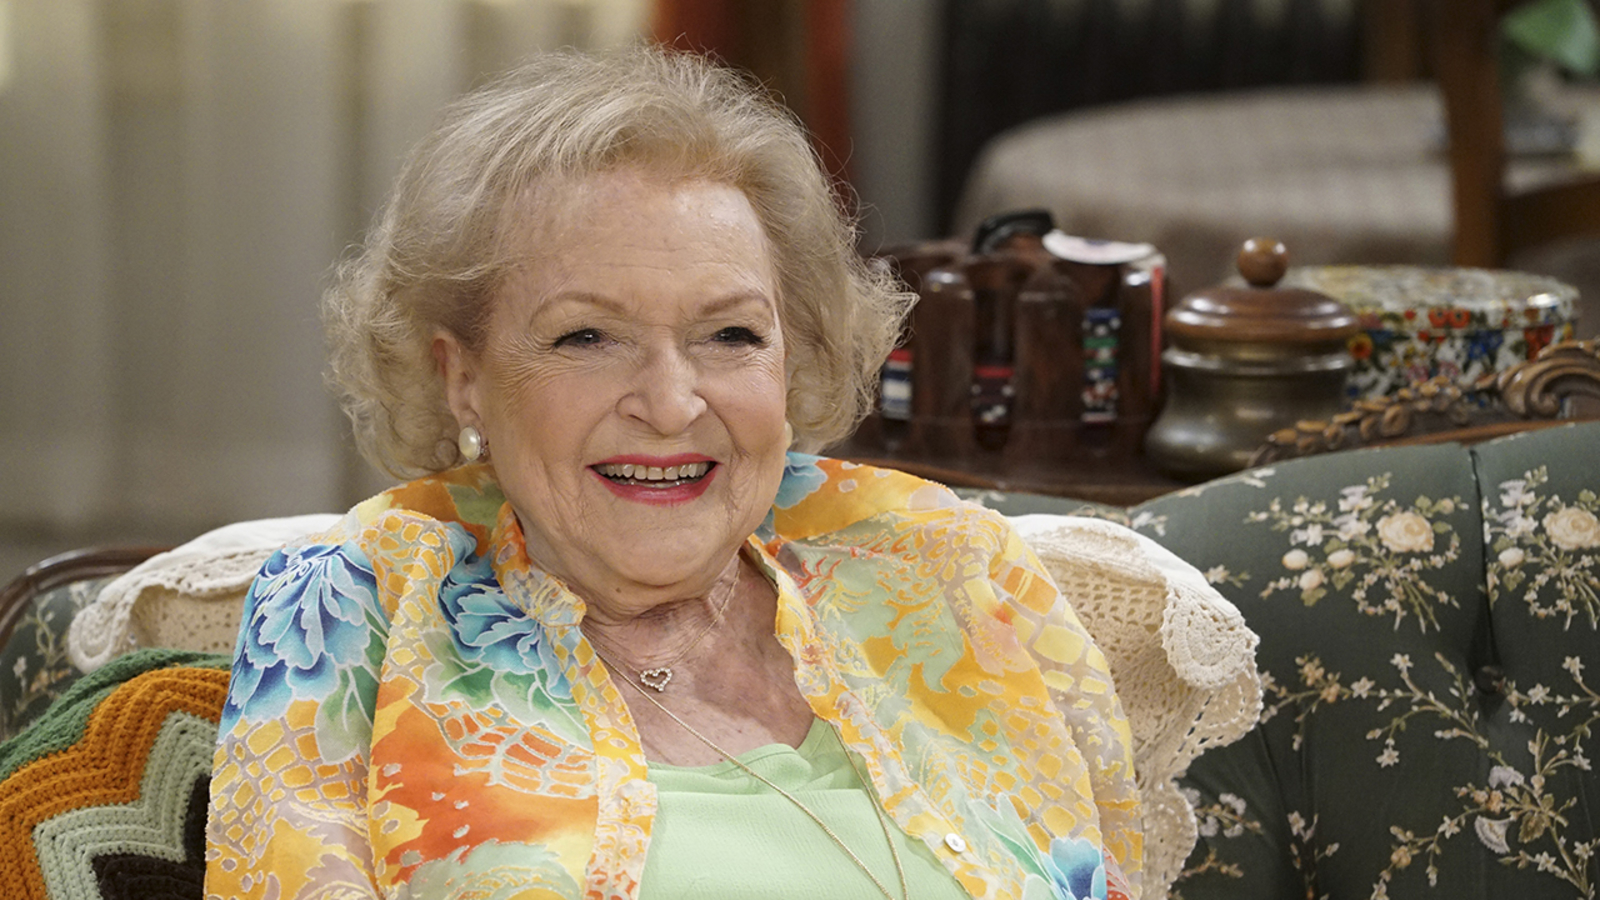 Betty White, who turns 99 today, credits optimism for lifetime of happiness